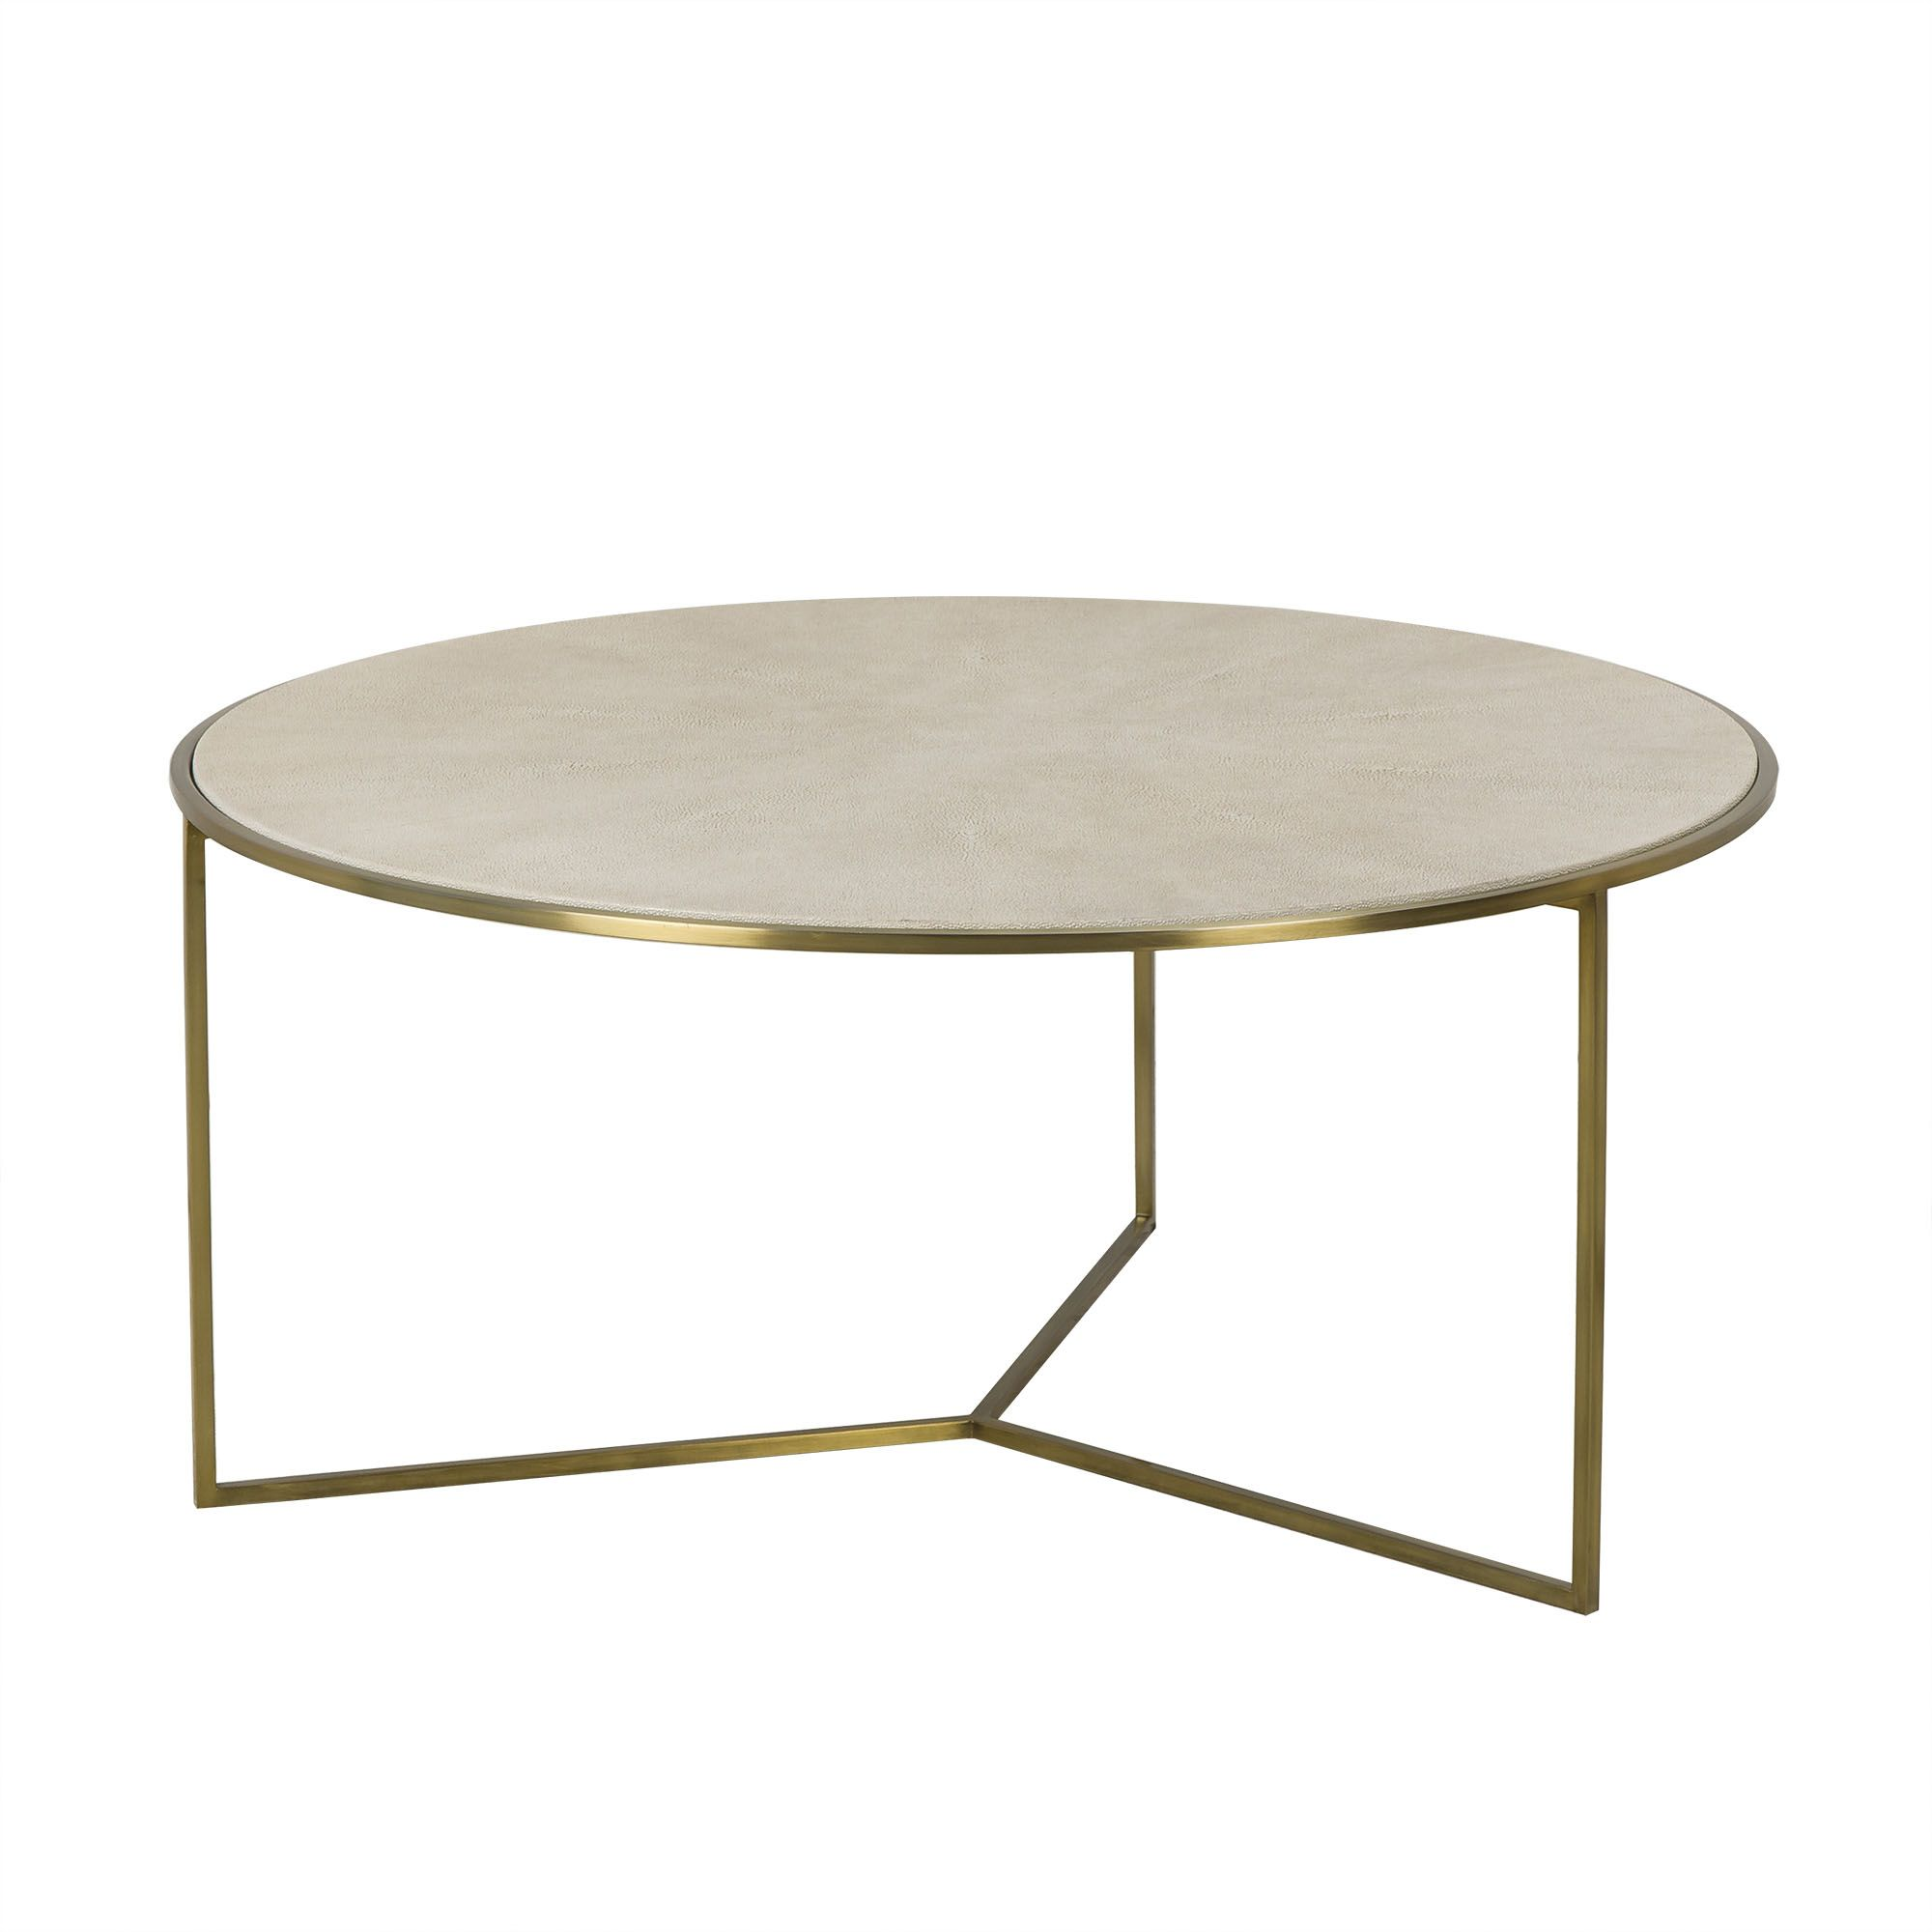 Living room gwen collection gwen round coffee table transitional round coffee table featuring a linen colored faux shagreen in a sunburst pattern with